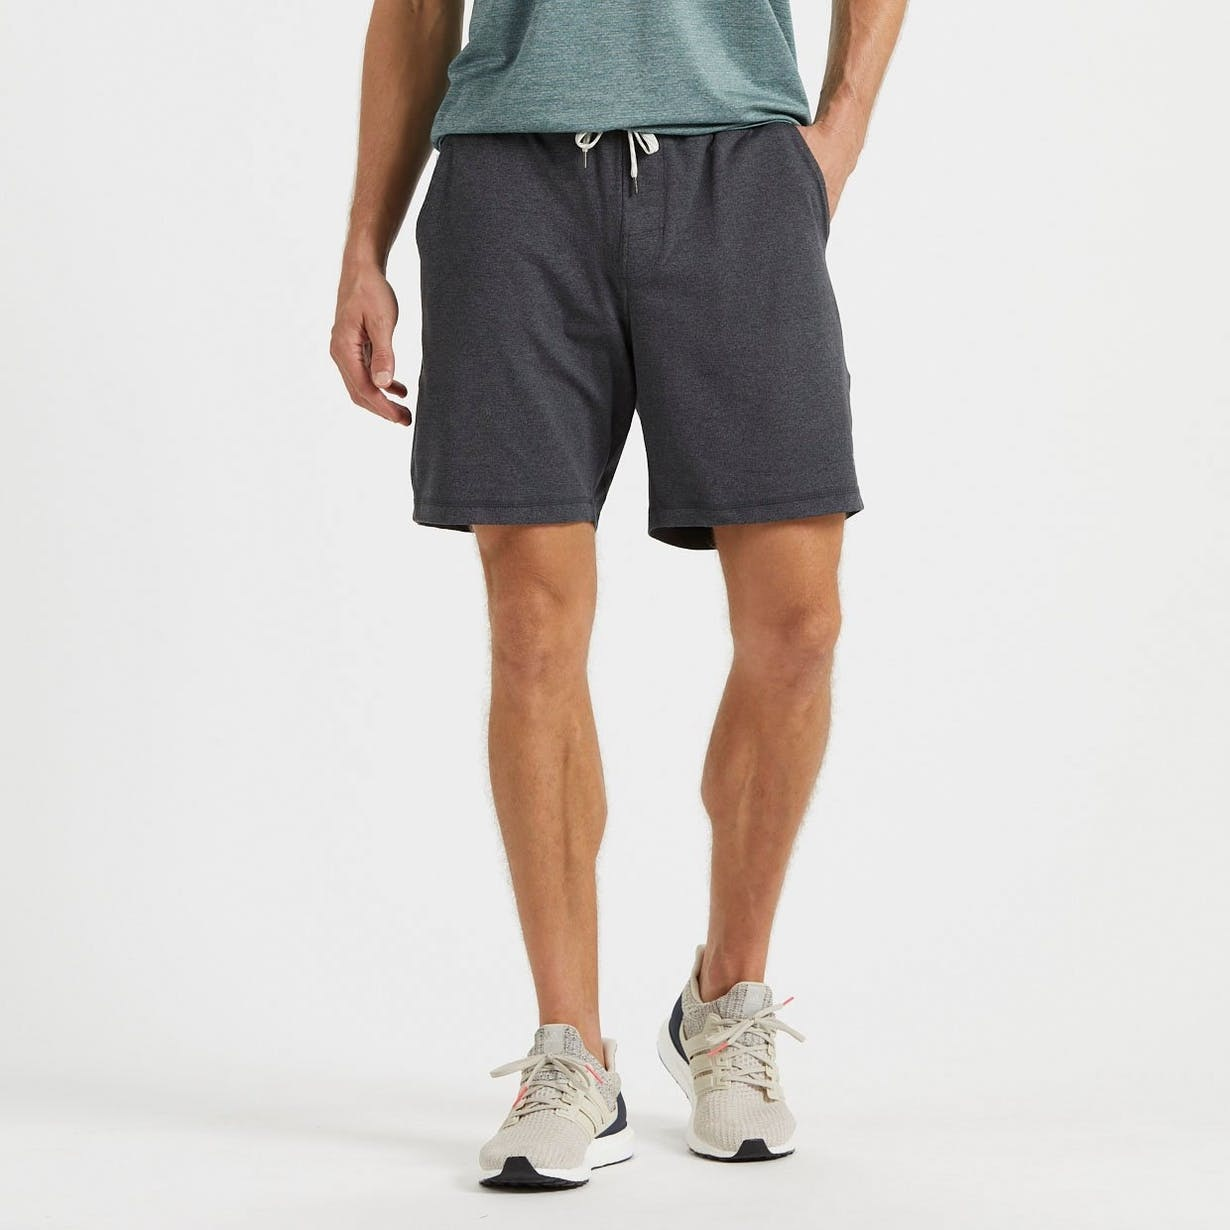 Vuori Men's Ponto Short